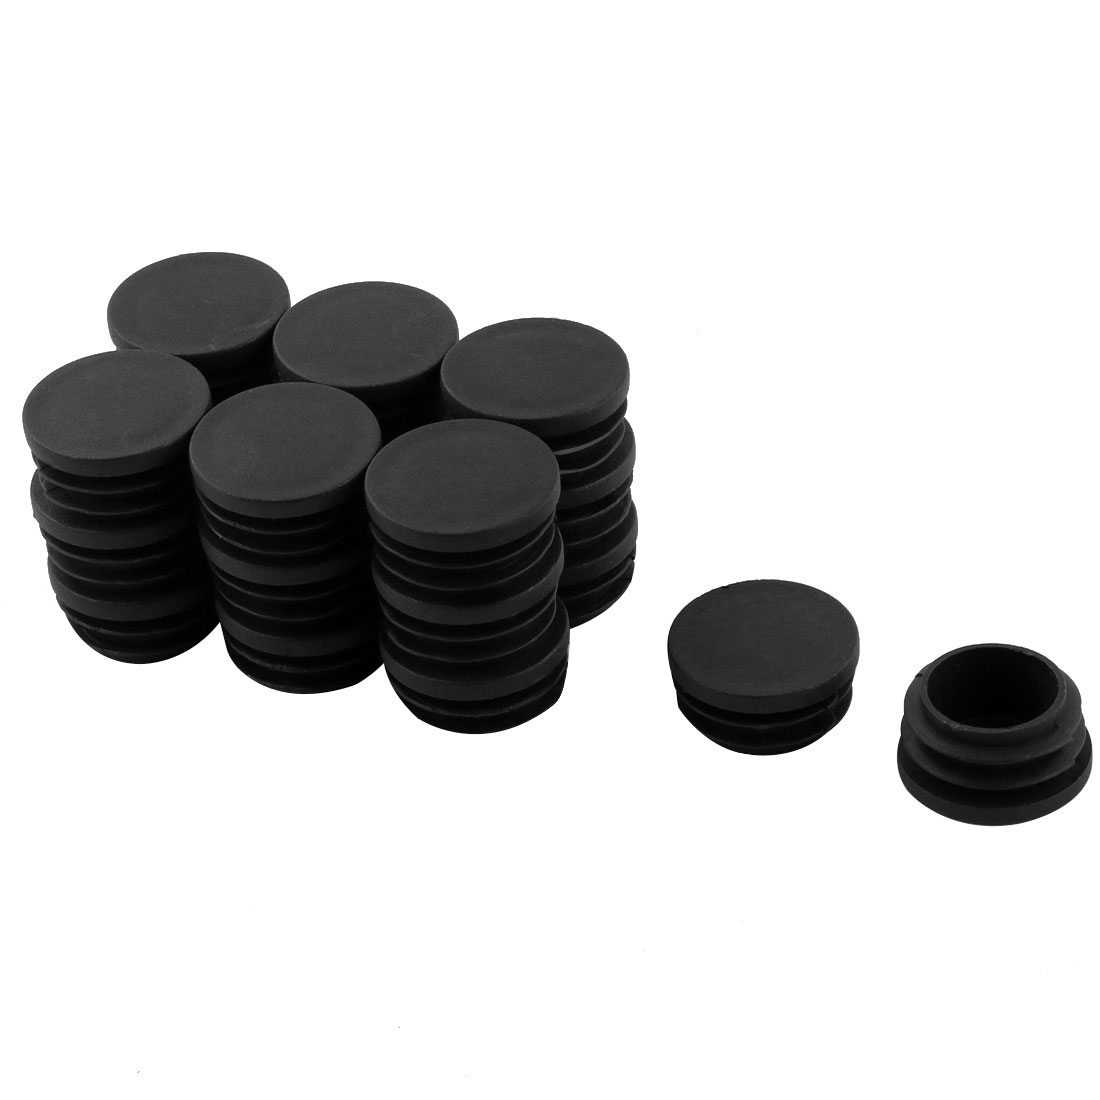 20pcs 32mm Plastic Blanking End Caps Round Tube Pipe External Inserts